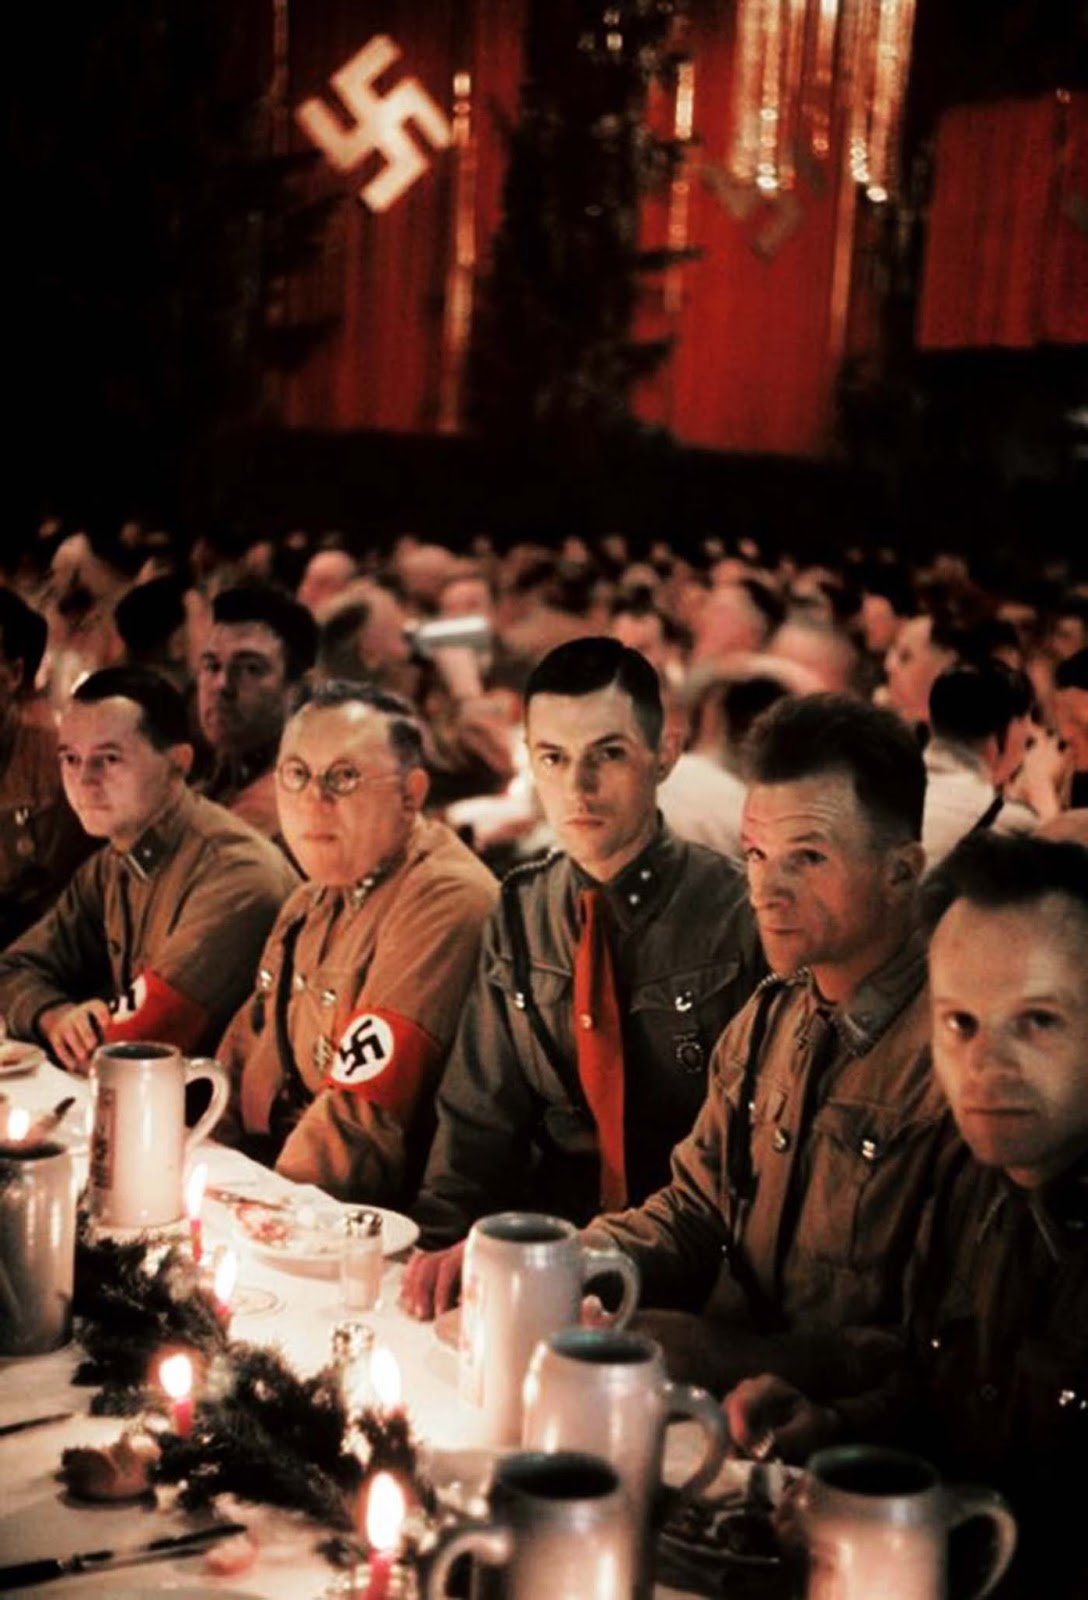 Waffen SS (or Schutzstaffel) officers cadets sit at a long table during a Christmas party.